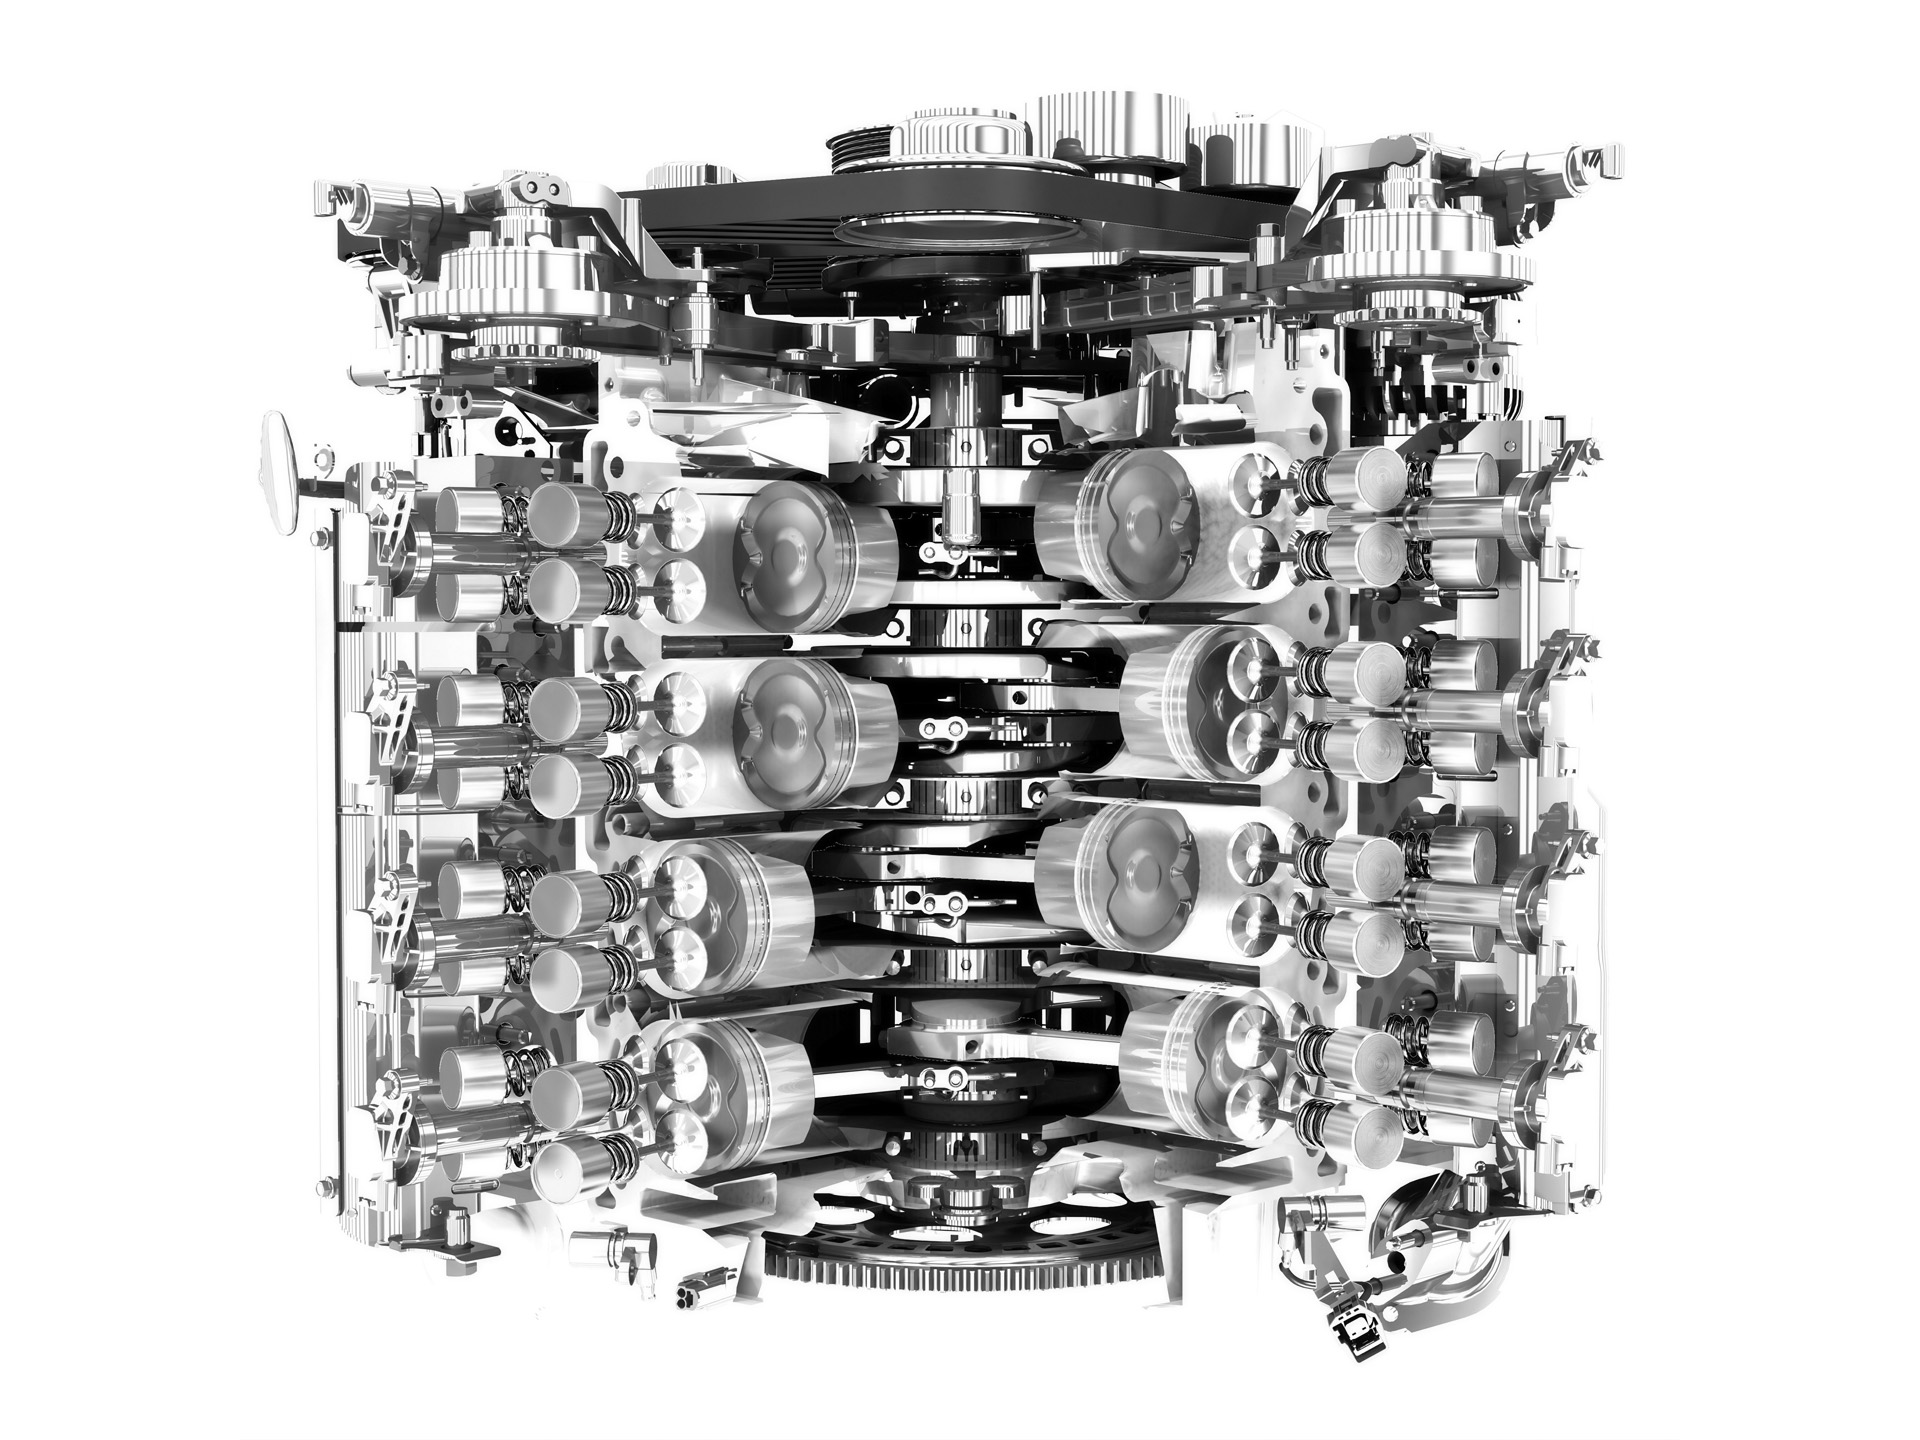 Sample P010d Engine